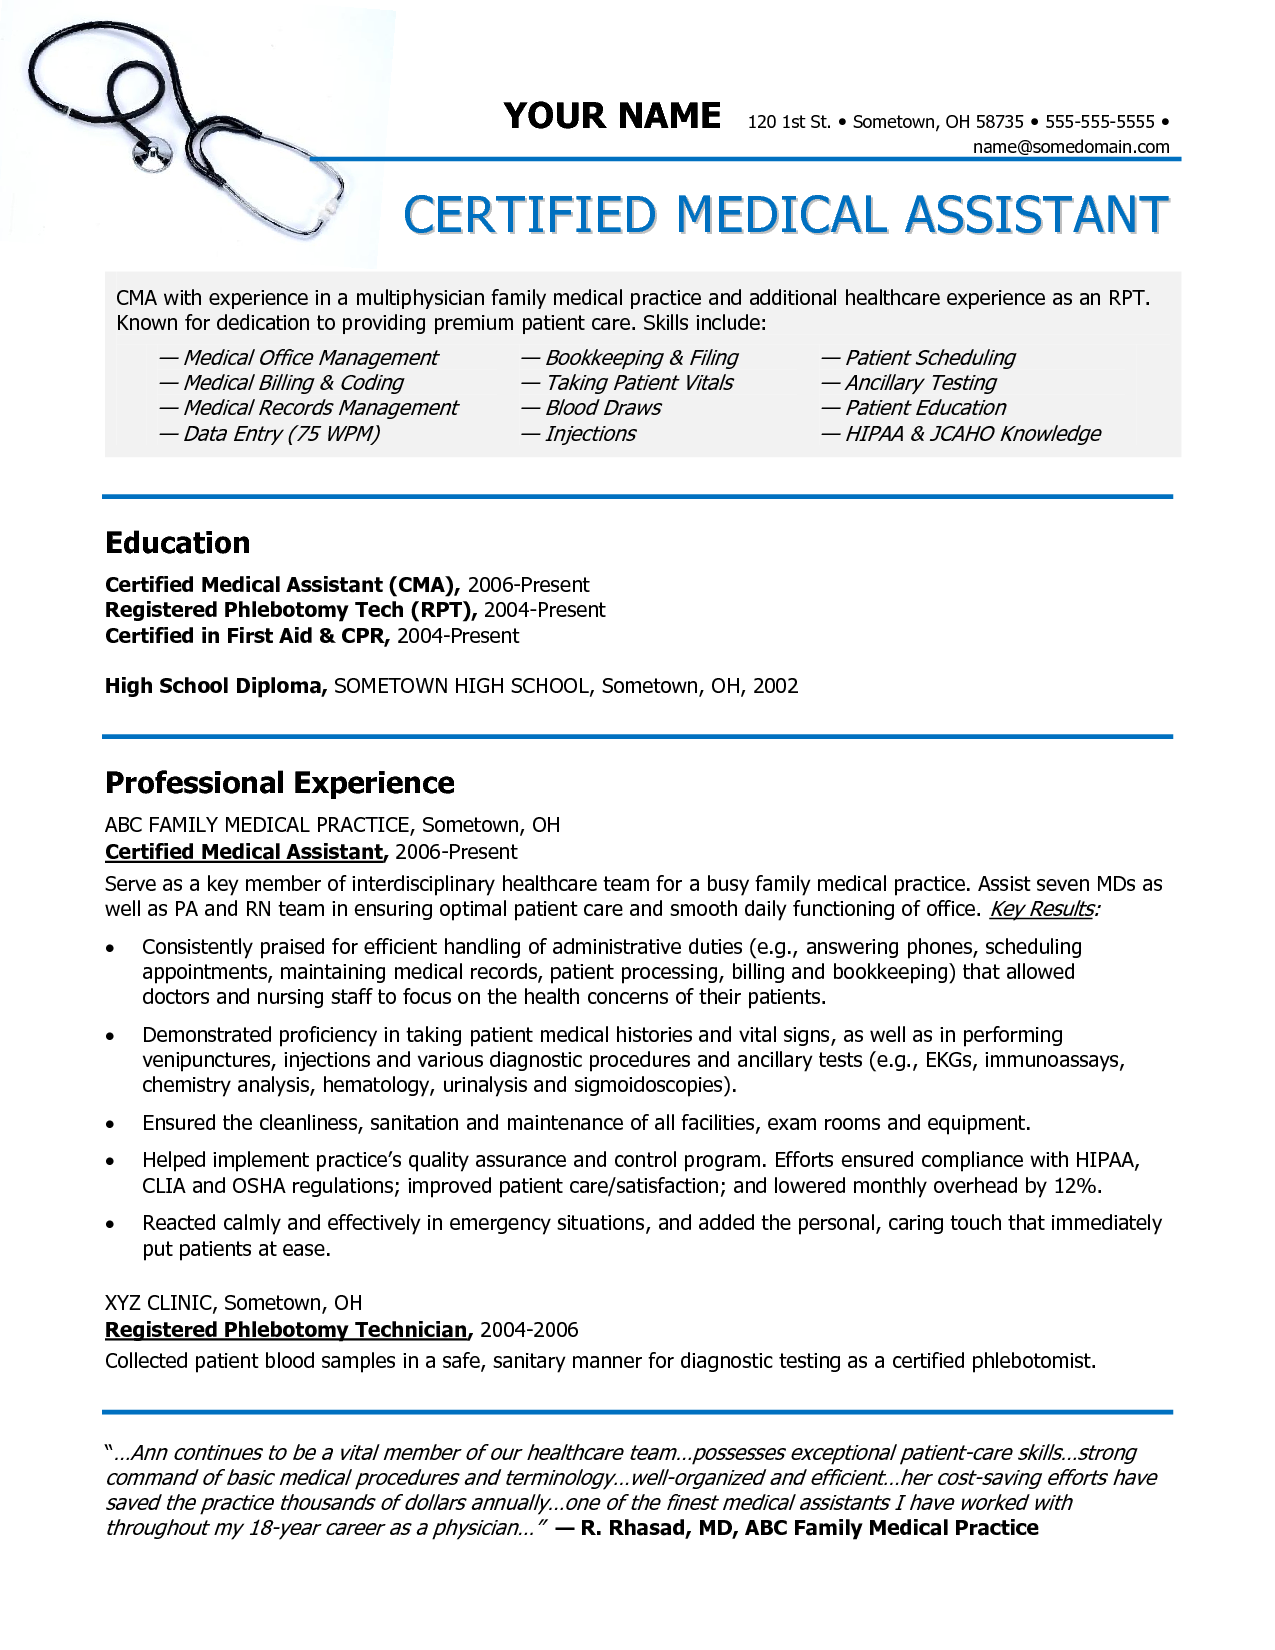 Medical Assistant Resume Entry Level Examples 18 Medical Assistant